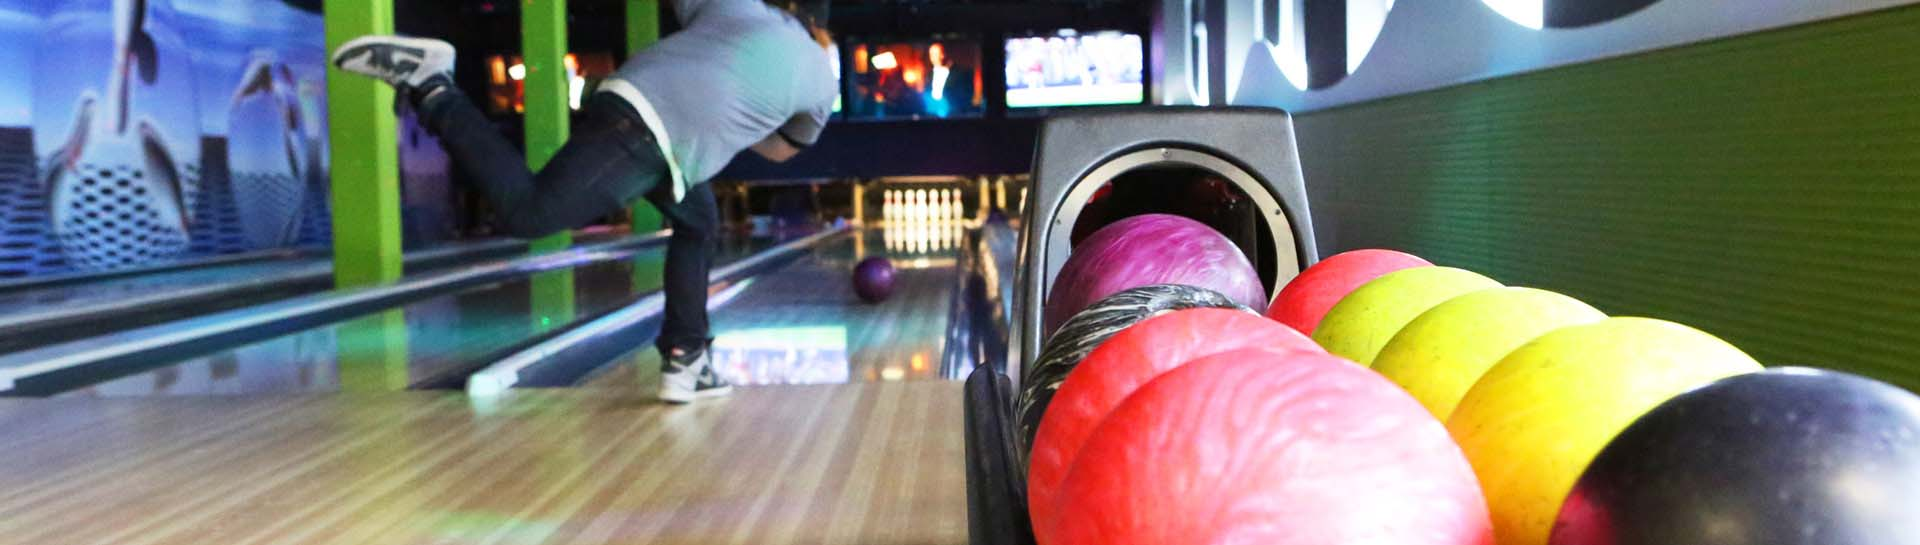 bowling lane - Photo Credit: SilverStar